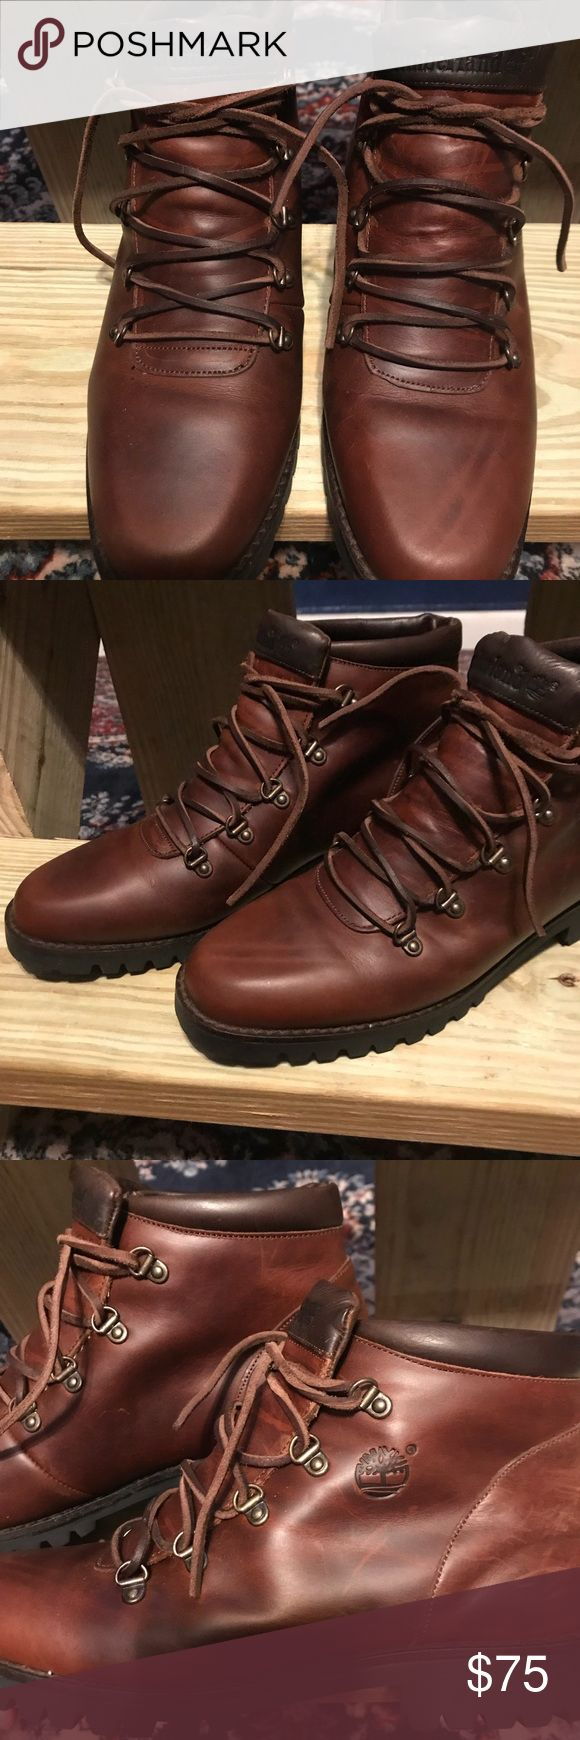 Timberland Hiking Boots Perfect Timberland Hiking Boots. These are women's. Timberland Shoes Ankle Boots & Booties